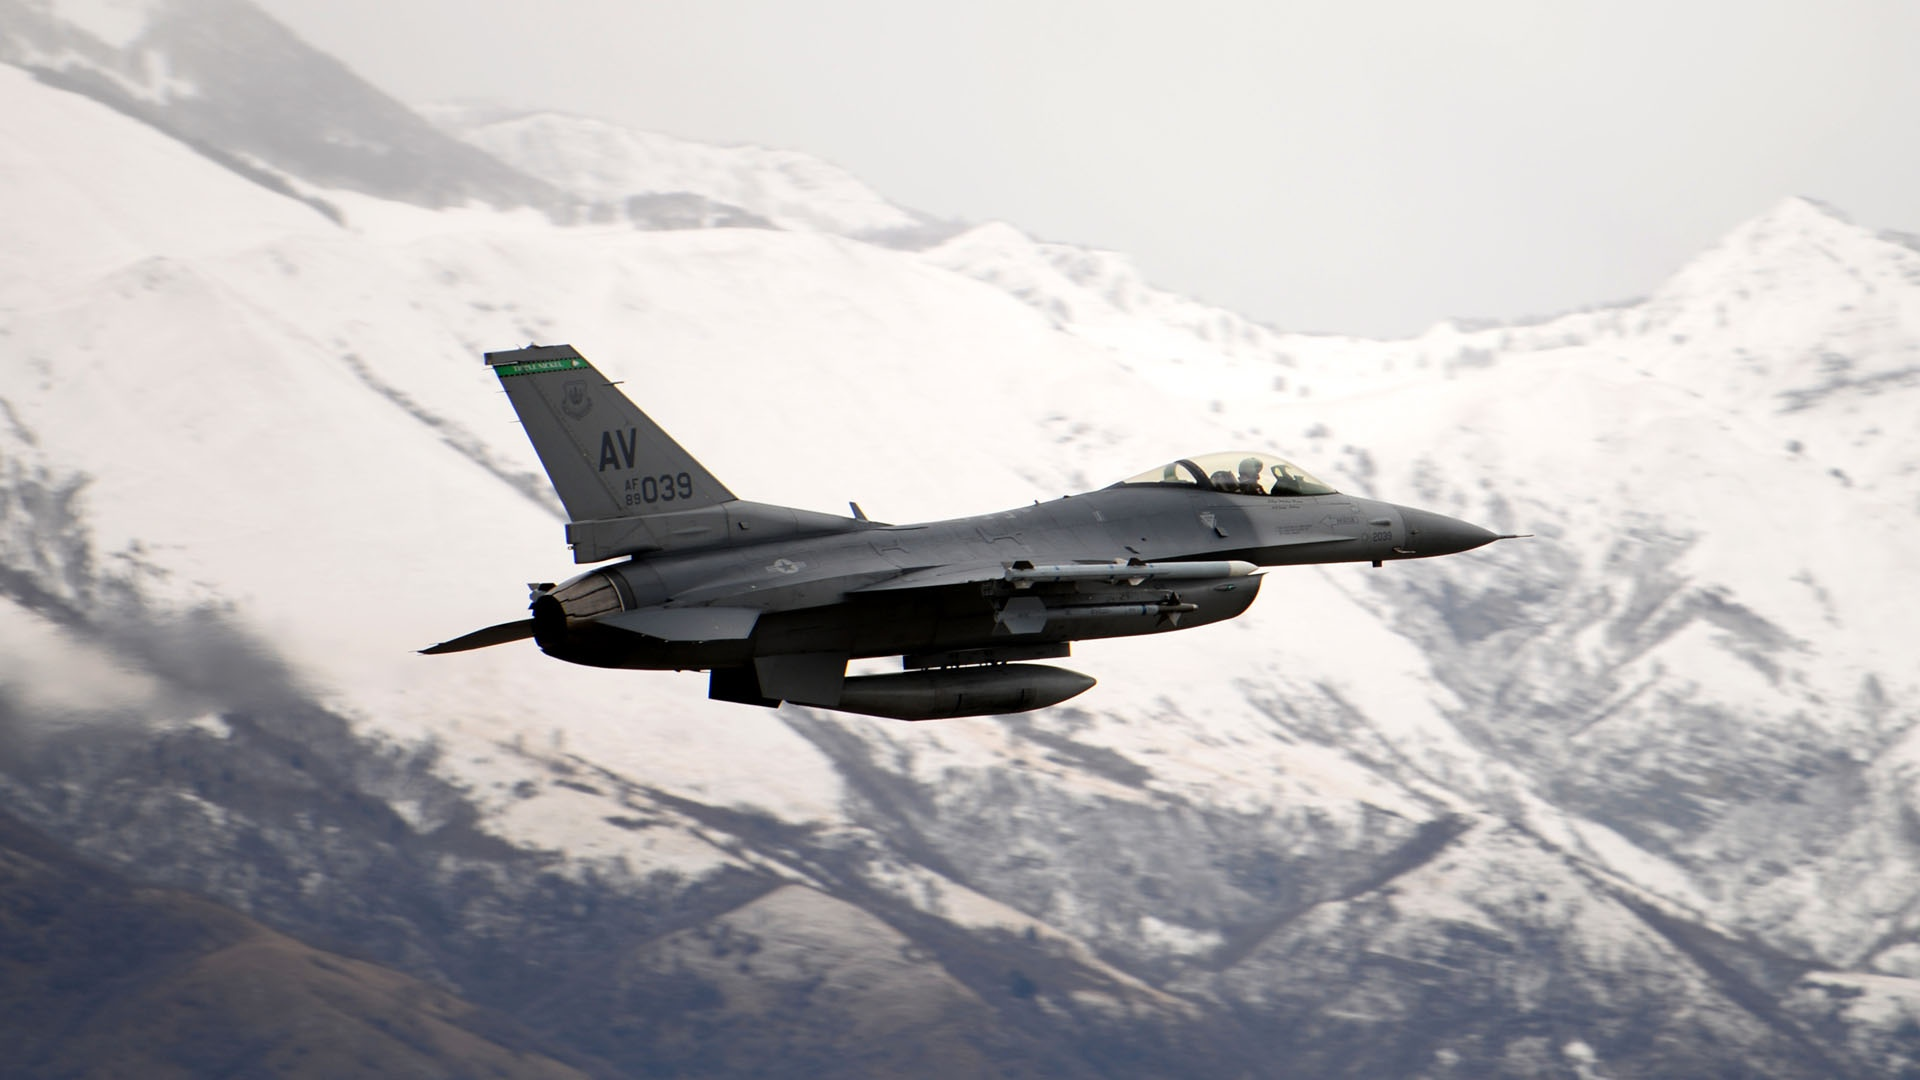 35+] General Dynamics F-16 Fighting Falcon Wallpapers on